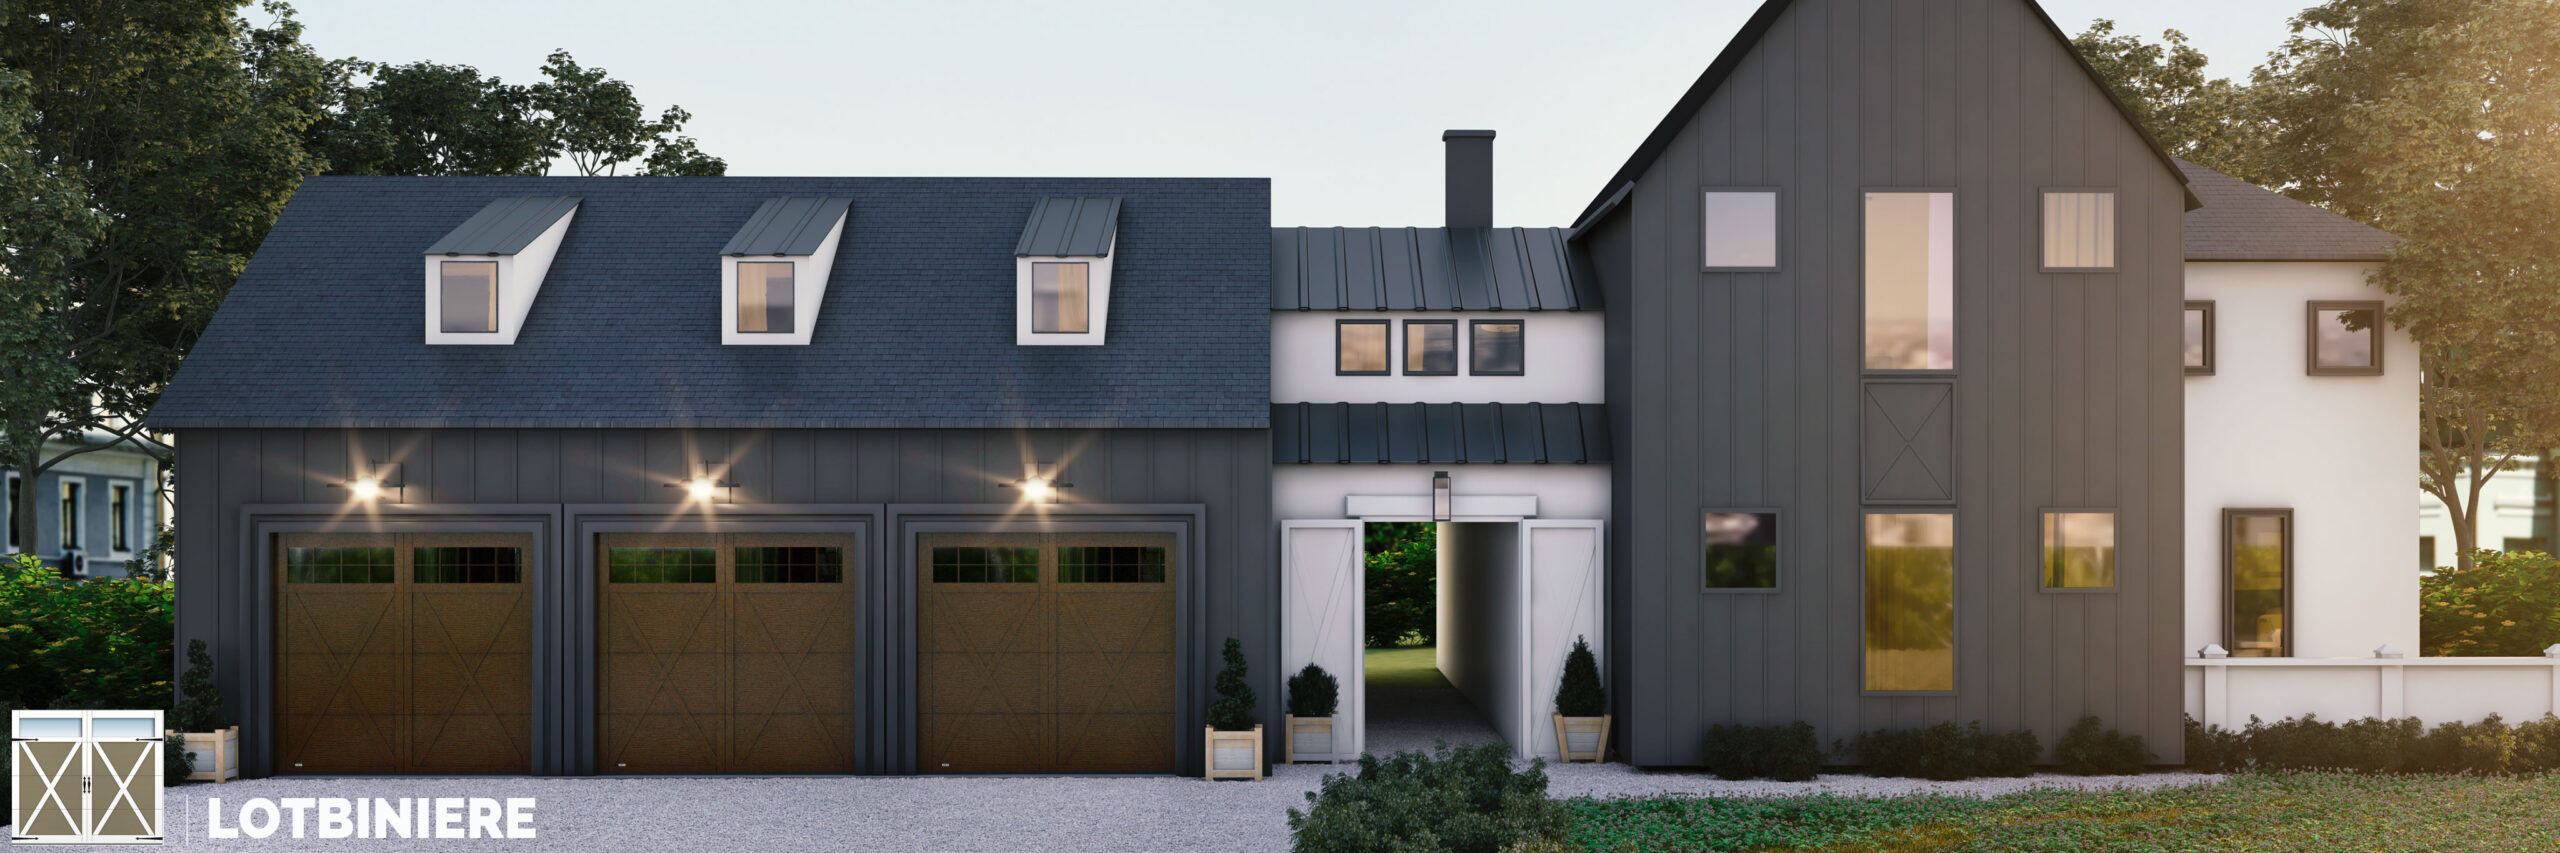 lotbiniere carriage house style garage door by garex scaled